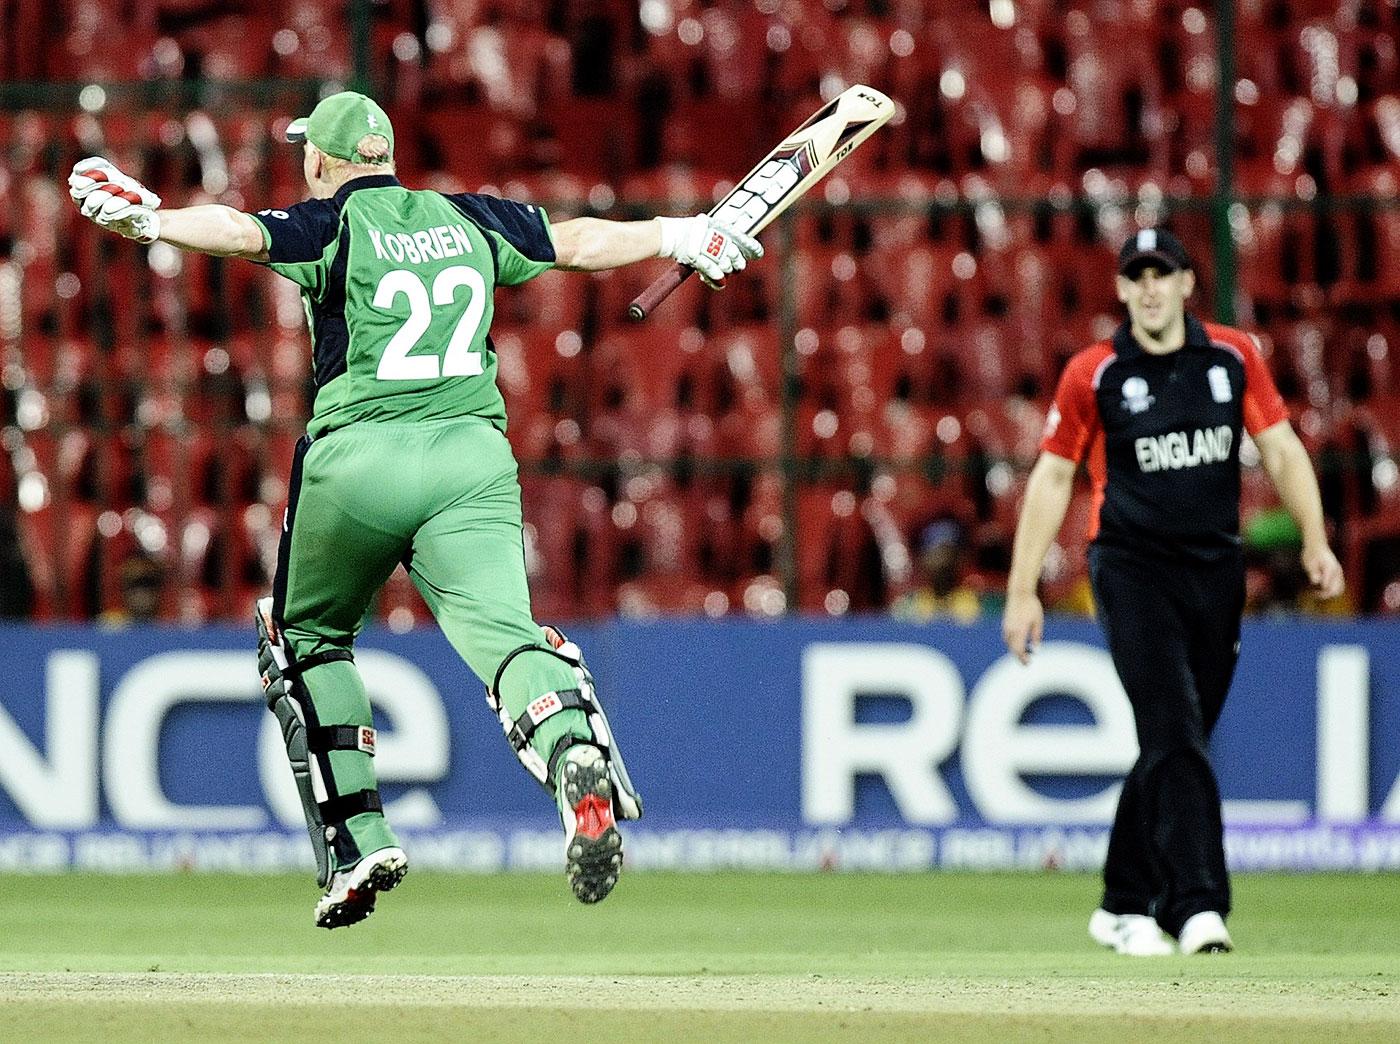 Kevin O'Brien roars with triumph after bringing up his 50-ball century